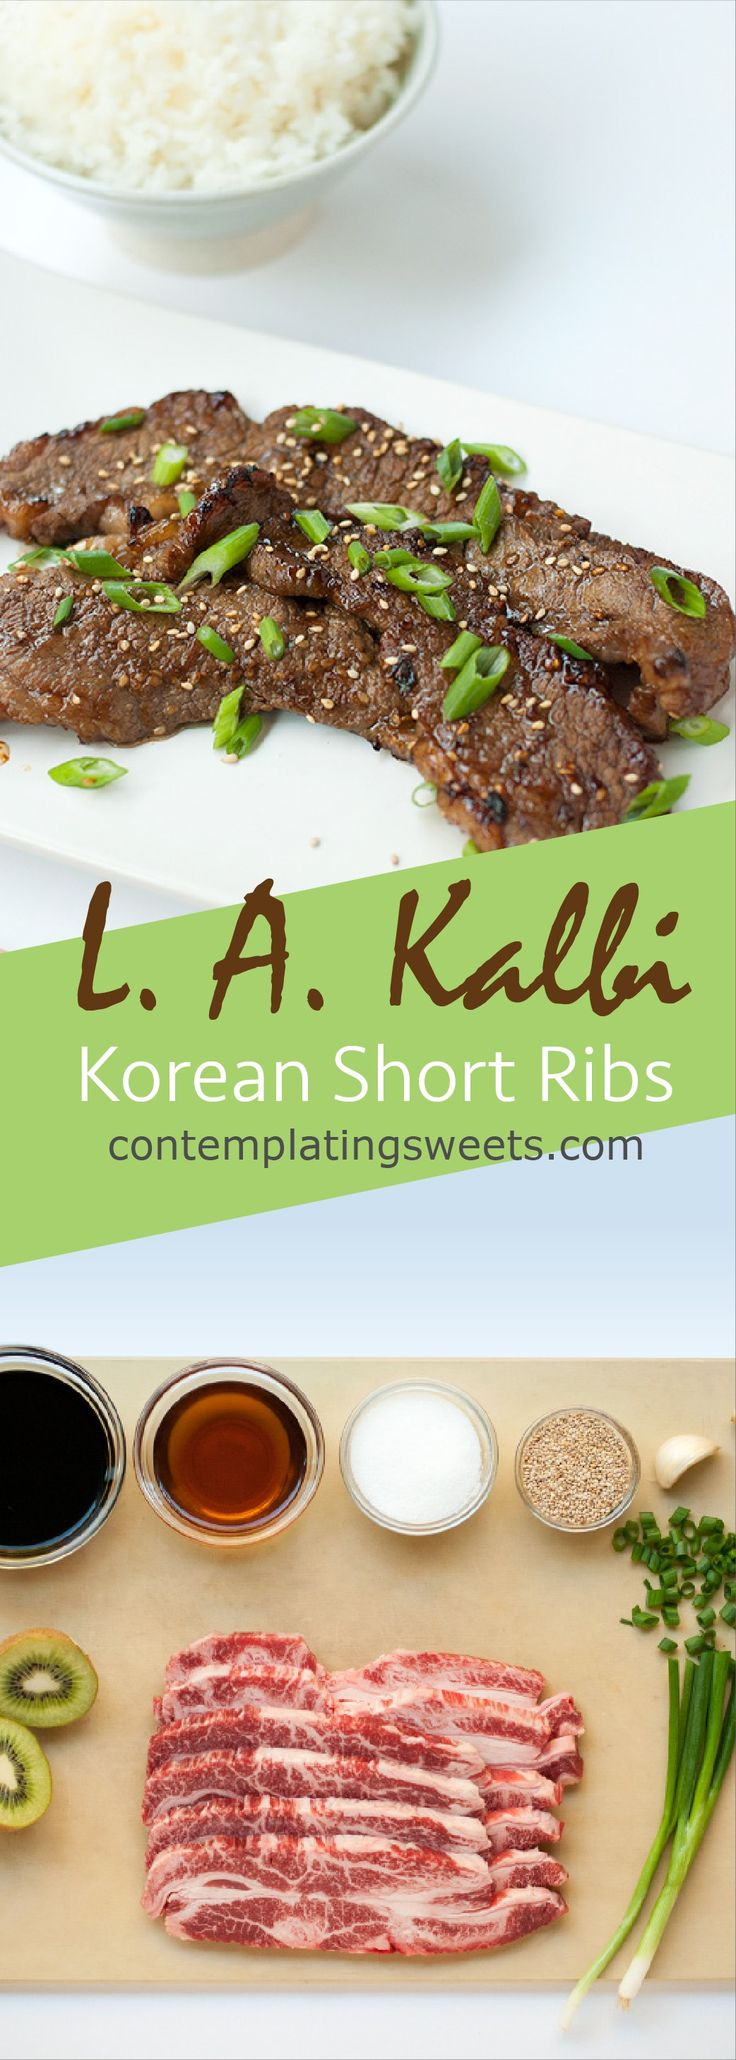 L. A. Kalbi- Korean Barbeque Short Ribs Flanken style short ribs (or whatever meat you want to use) marinated in a delicious Korean style marinade.